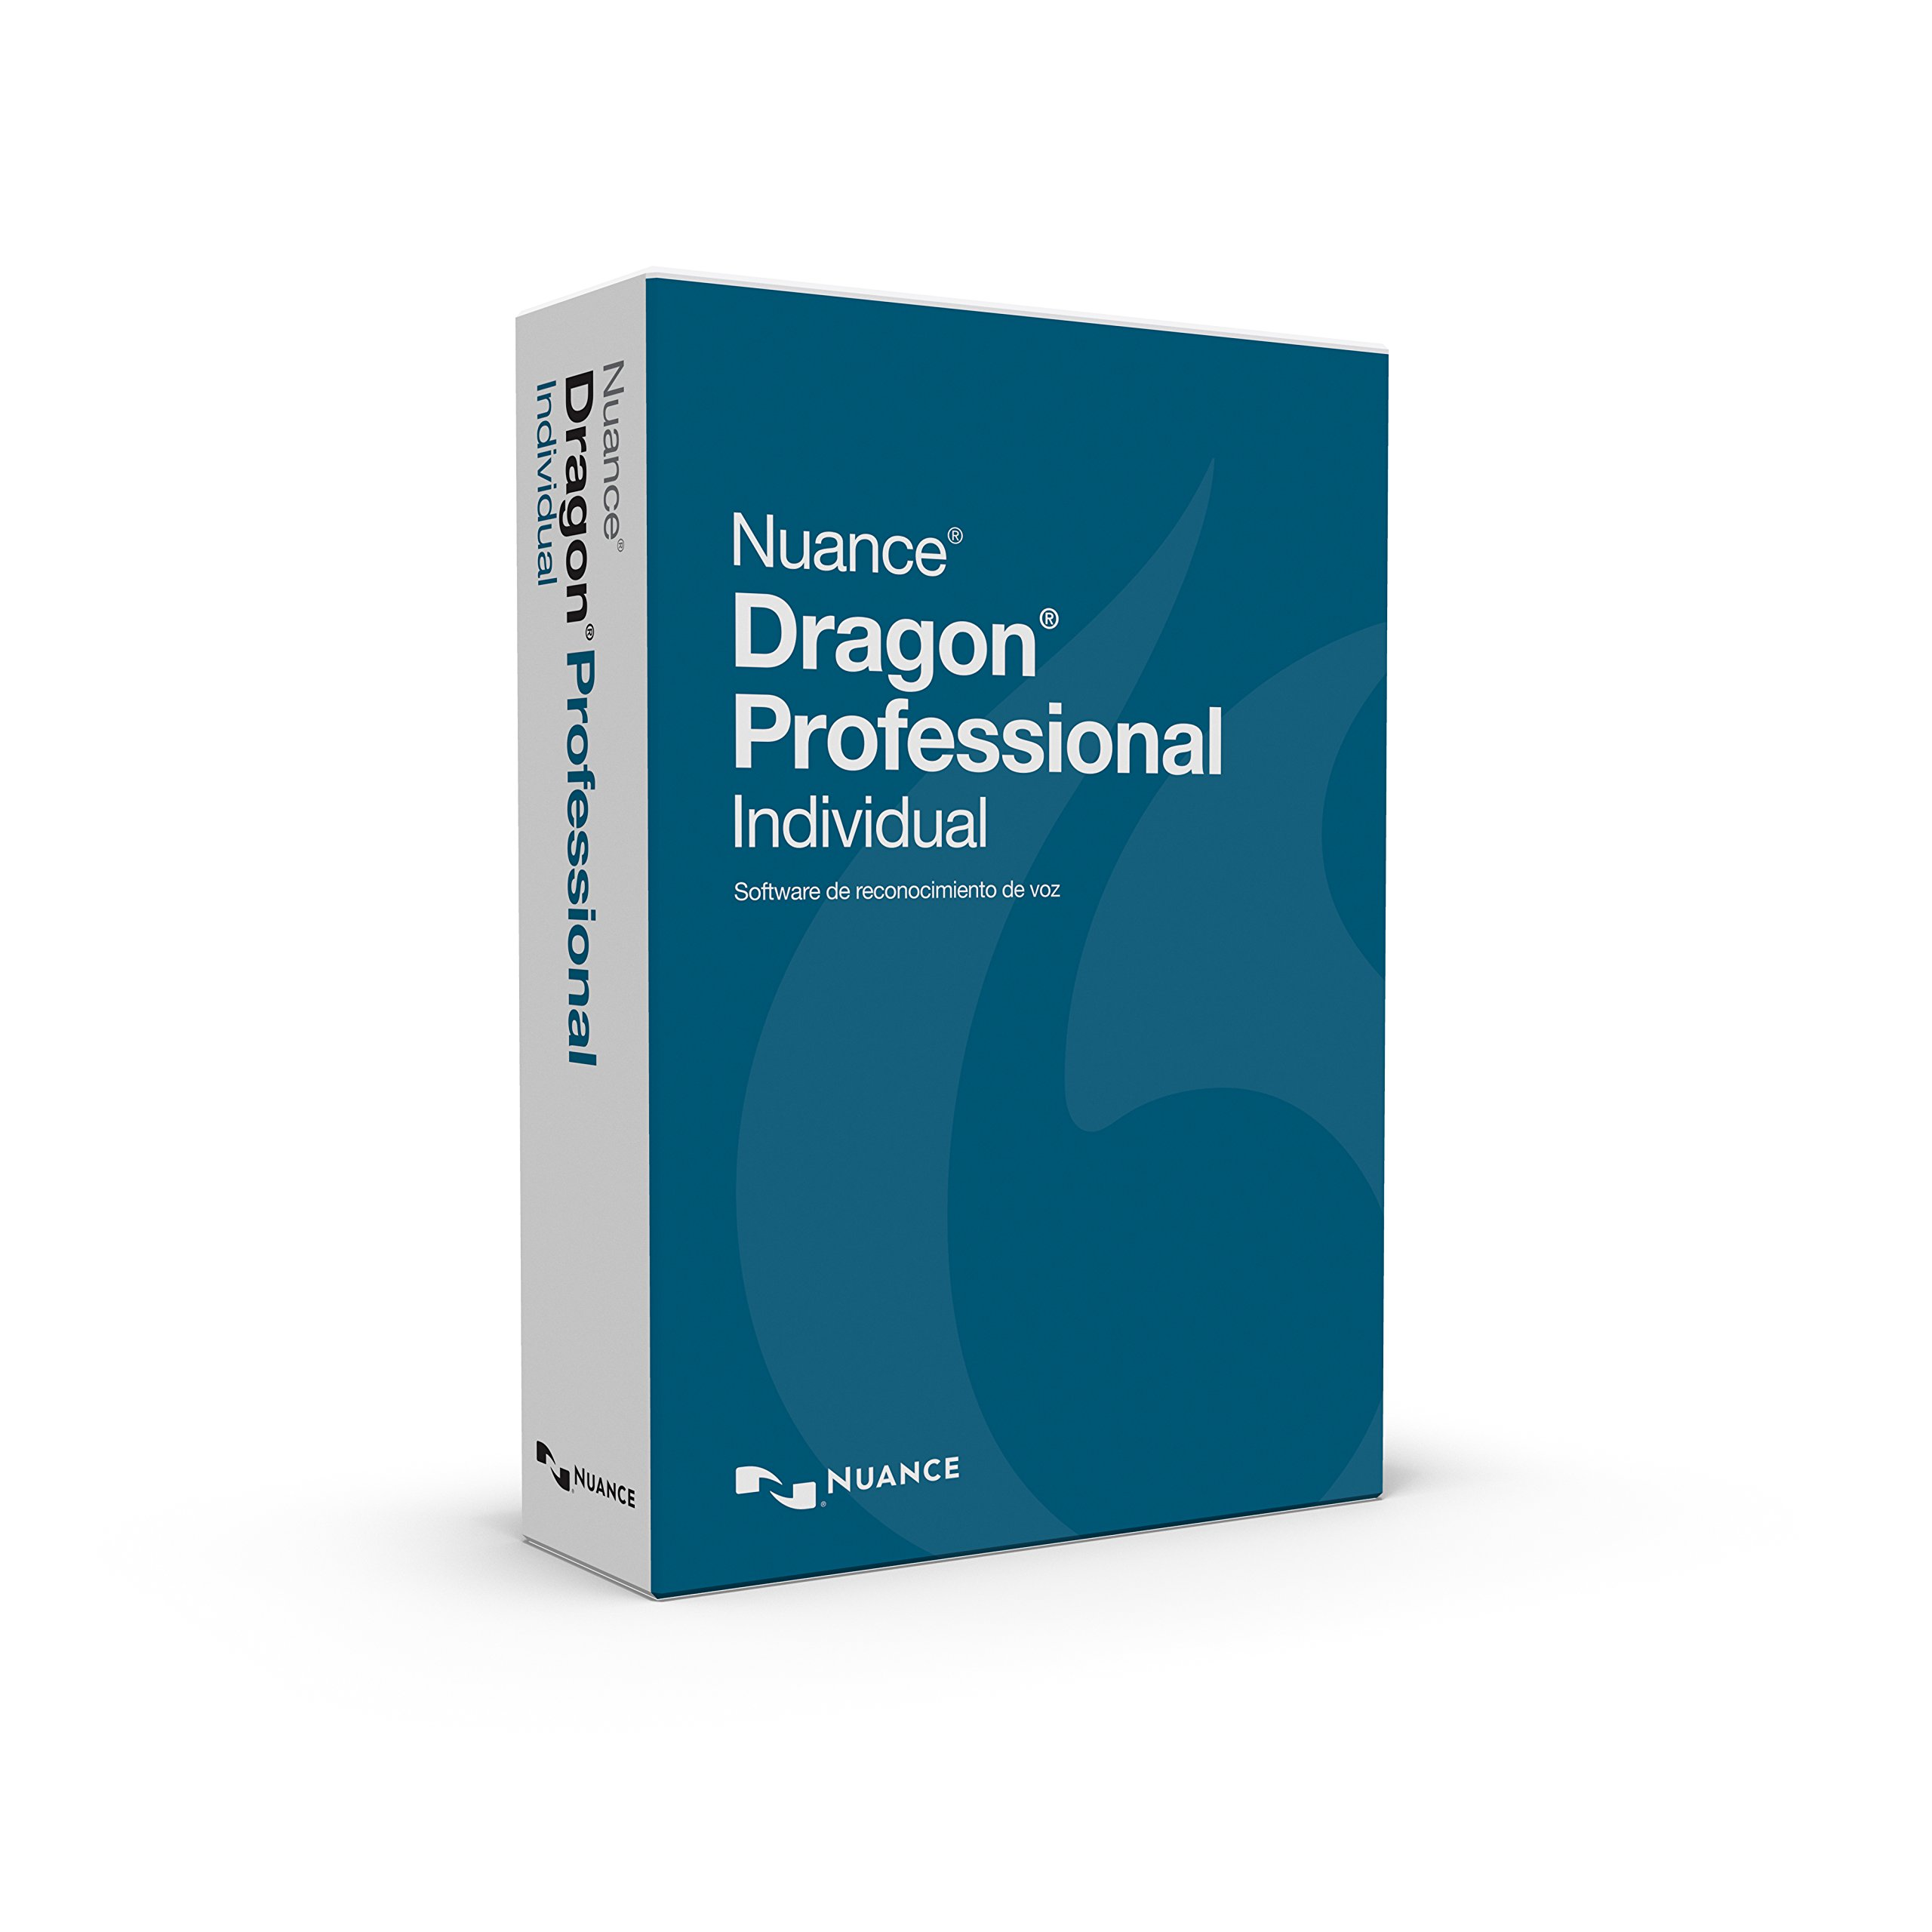 Dragon Professional Individual, Spanish by Nuance Dragon